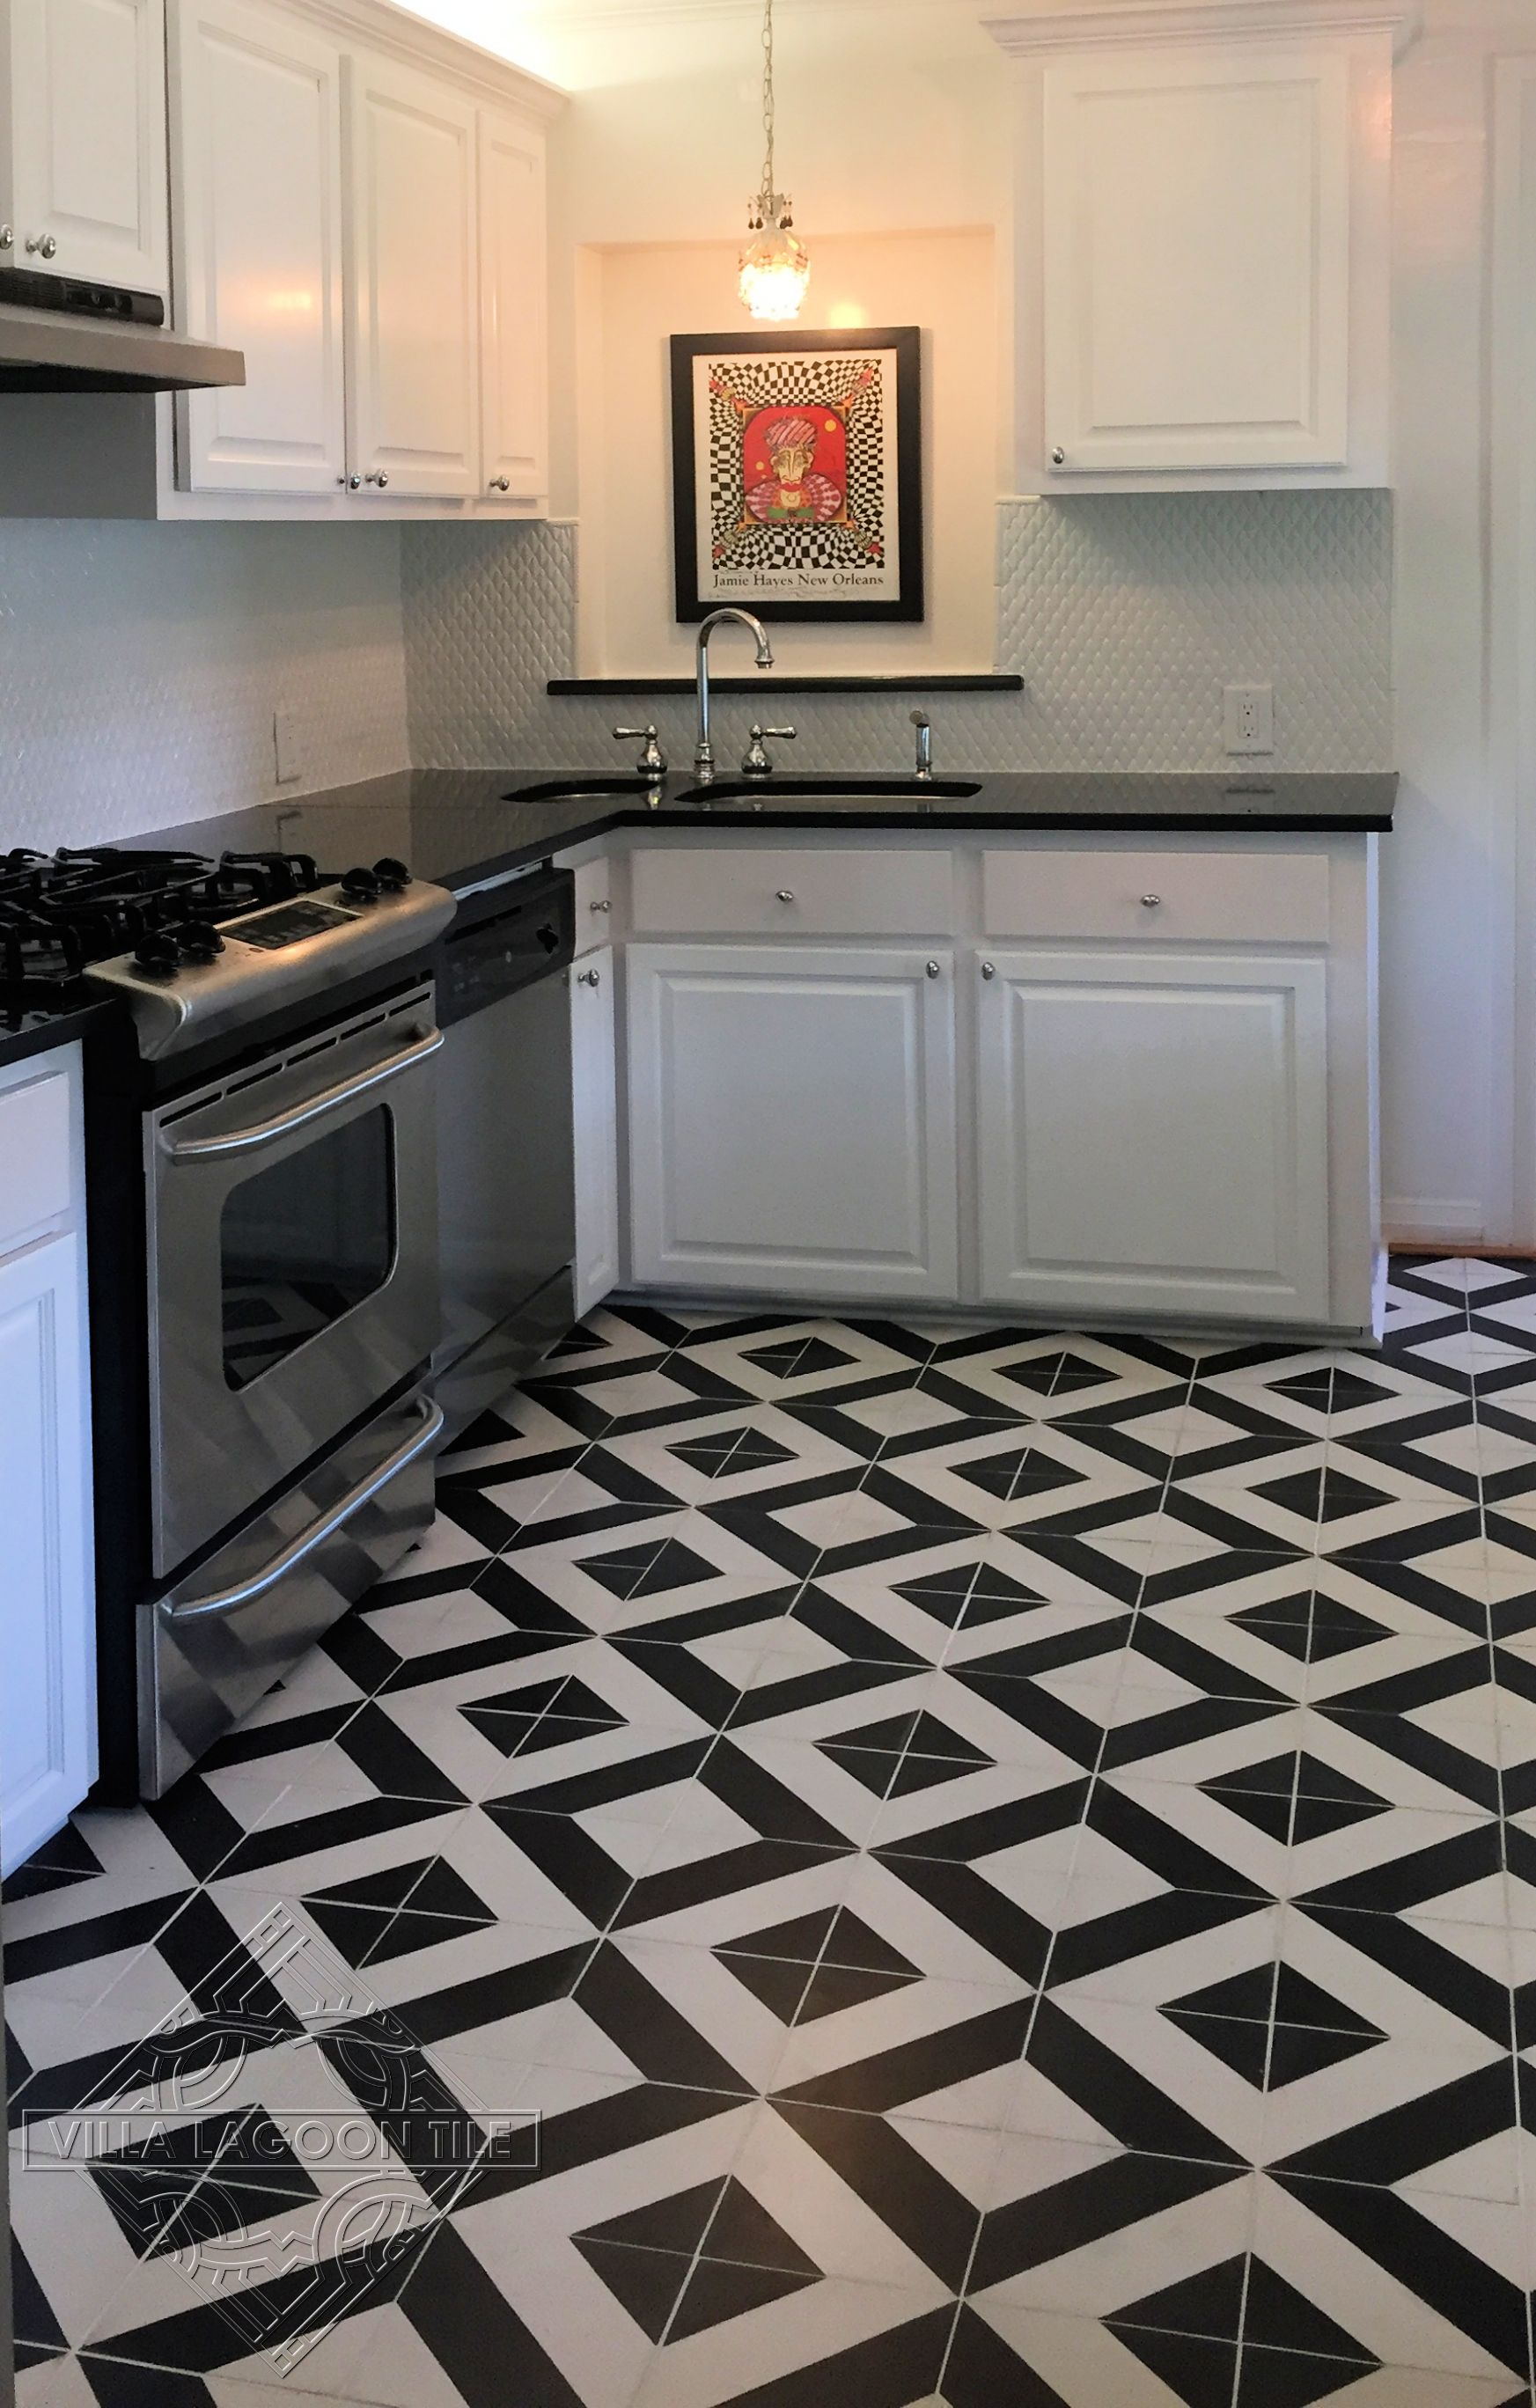 9 Pics Review You Are Tiling A Kitchen Floor That Is 9ft And ...